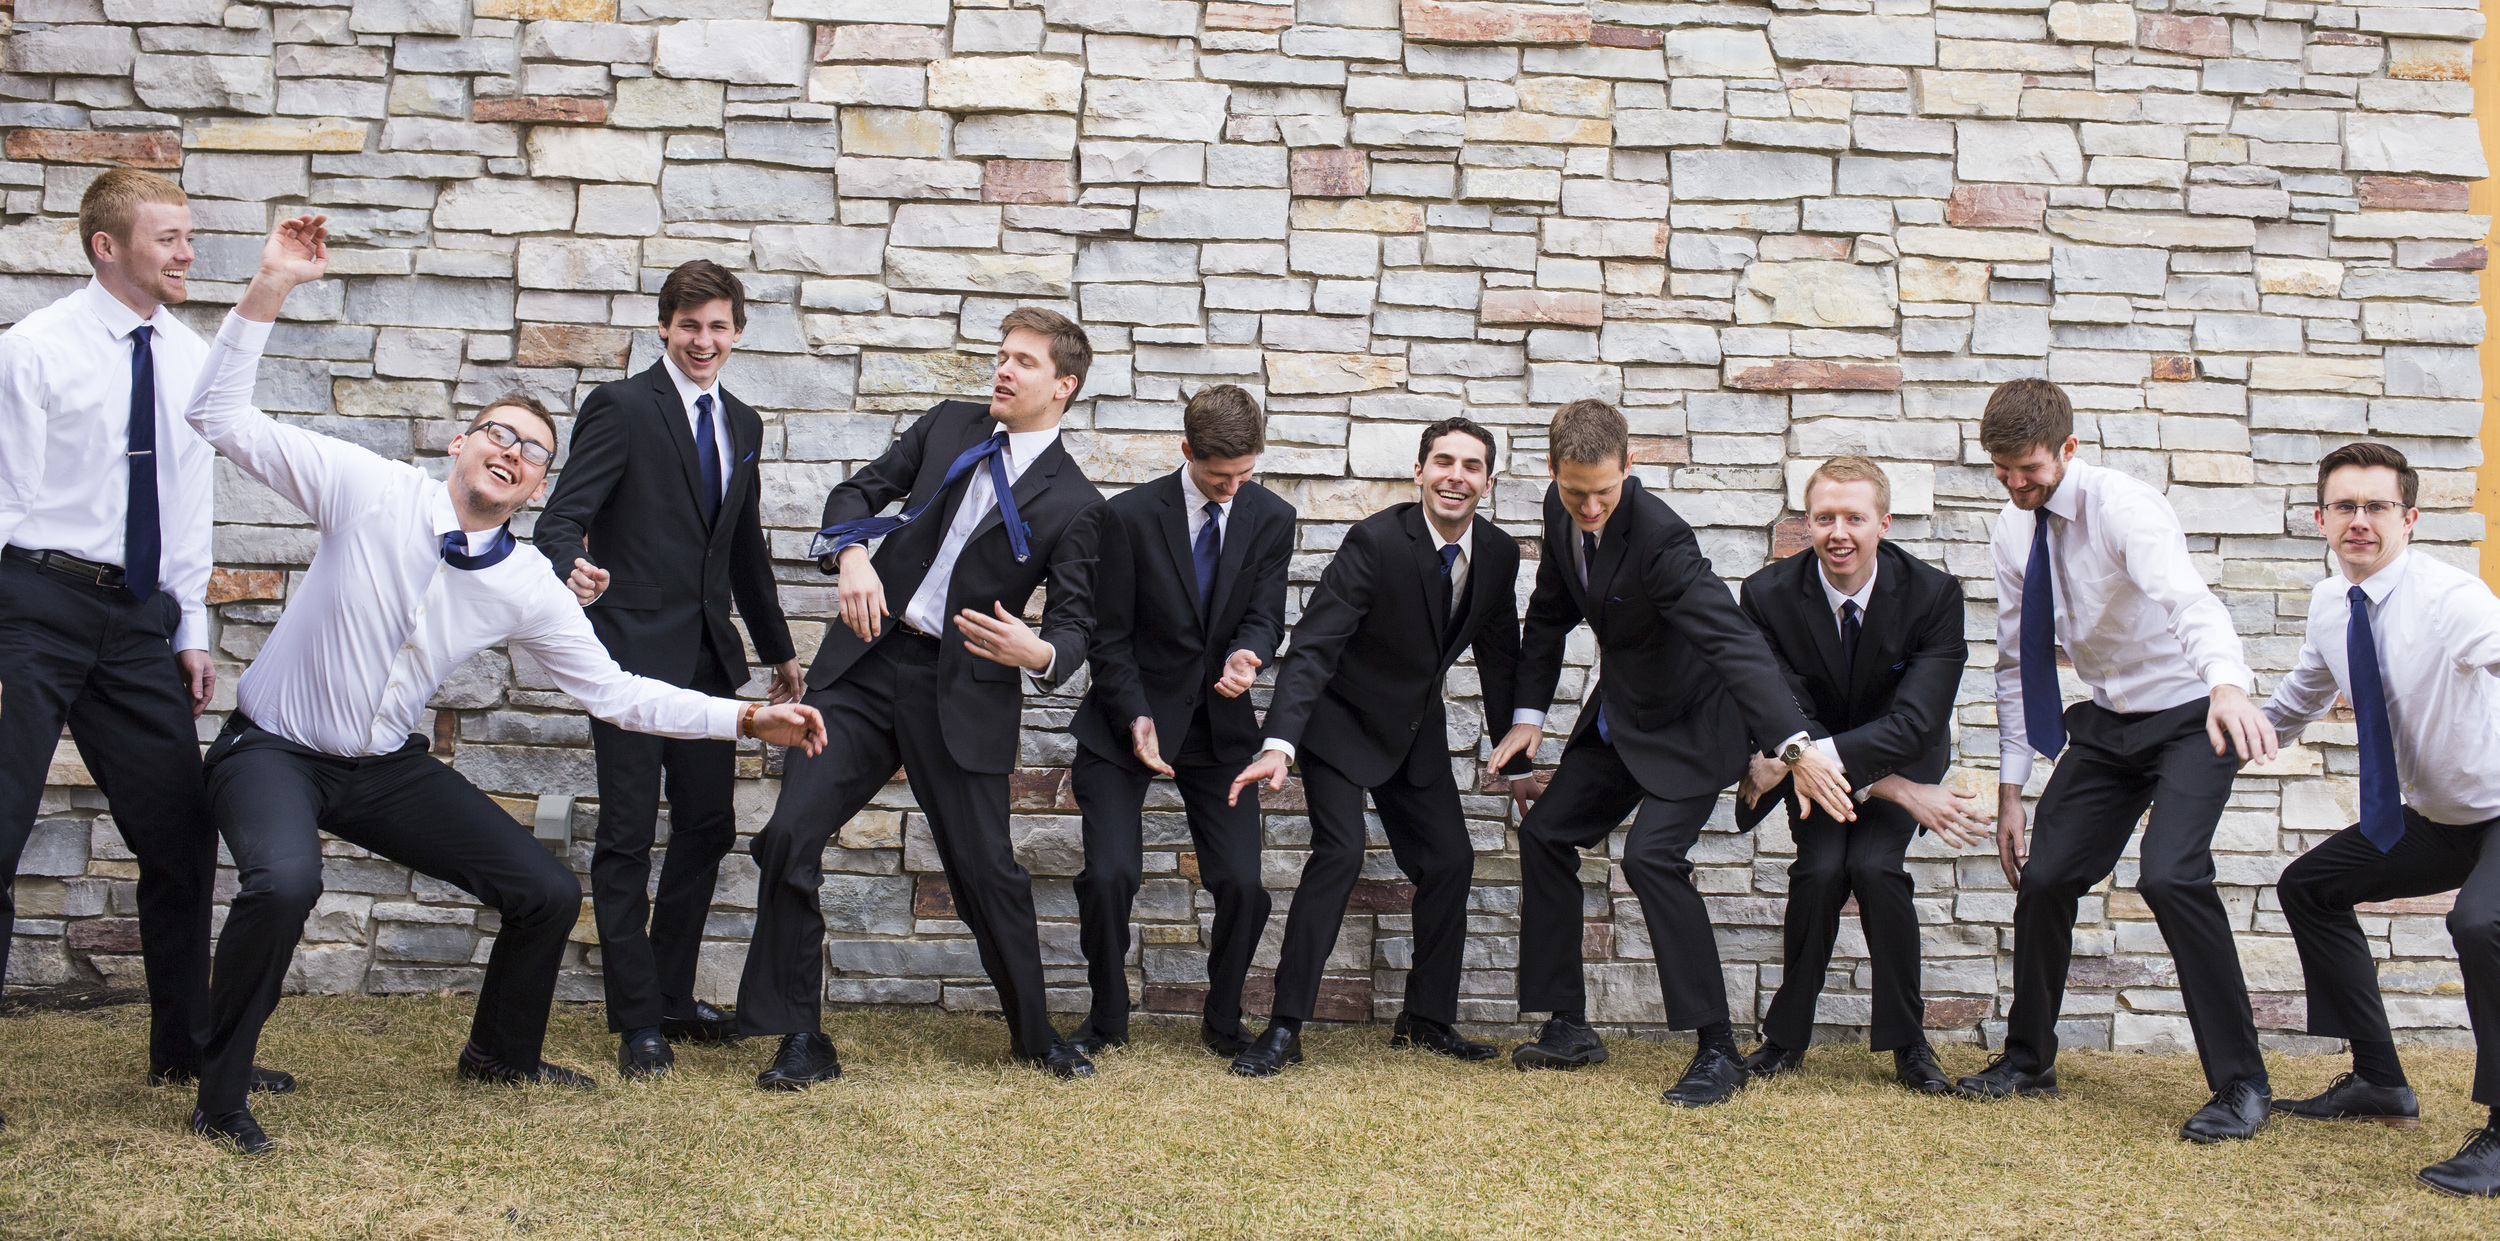 These groomsmen can wobble hahaha! Hilarious! I kinda wanted to keep making them do it forever. You had no idea how funny it was to watch them, and they would have kept going, too!